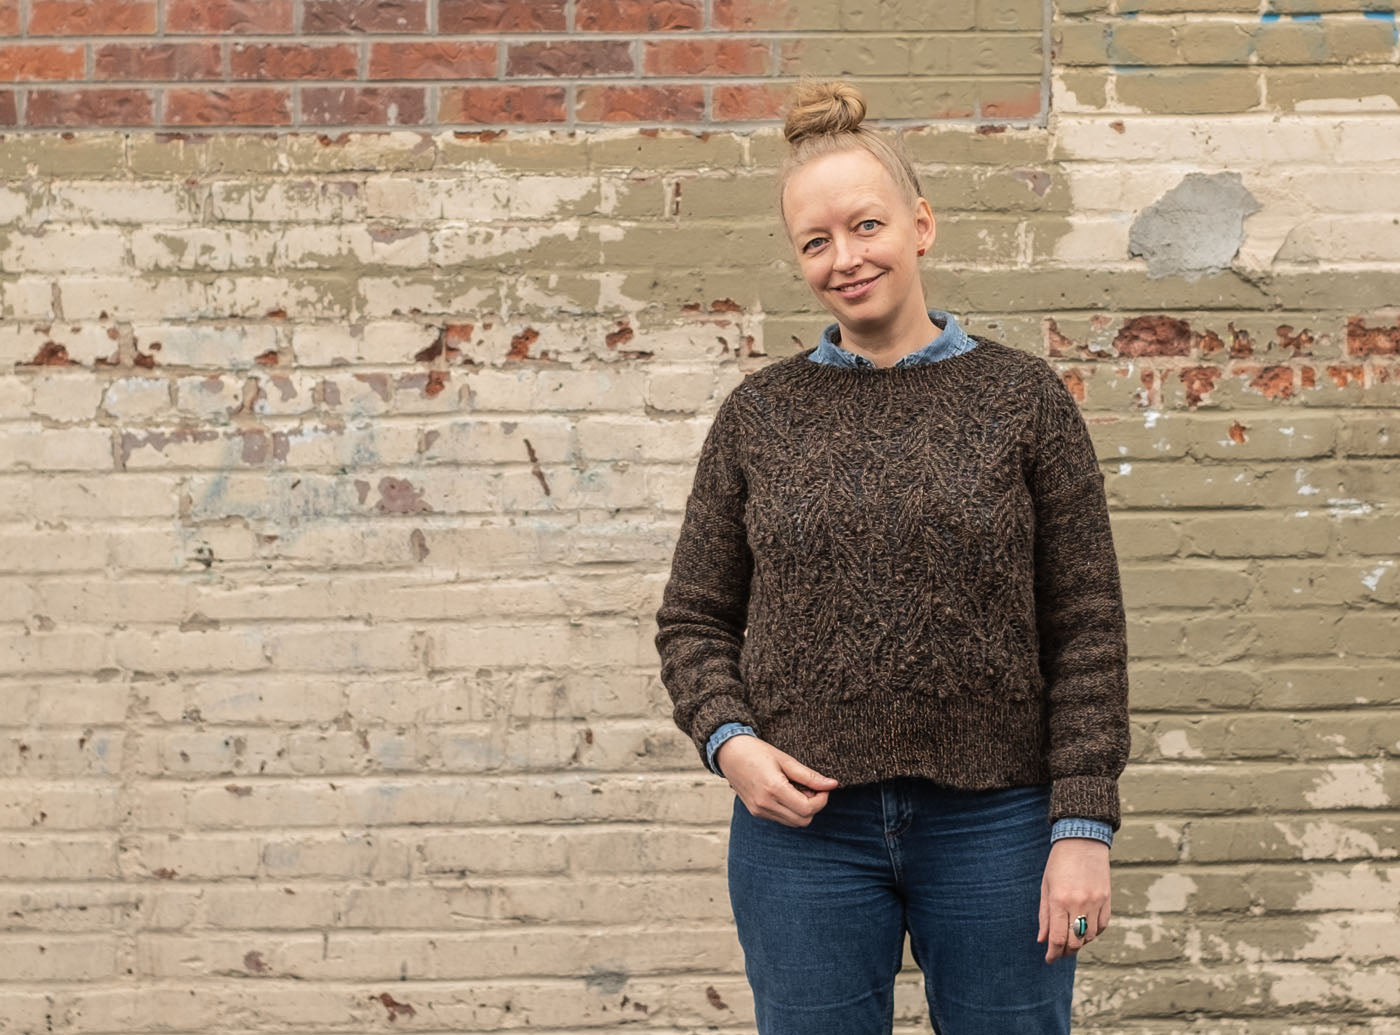 Amber stands smiling with her head tilted, wearing jeans, and a denim shirt under her hand knit Atlantic pullover. Her right hand gently grasps the bottom hem of her deep brown, textured sweater. Behind her is a brick wall painted in a patchwork of taupe hues.